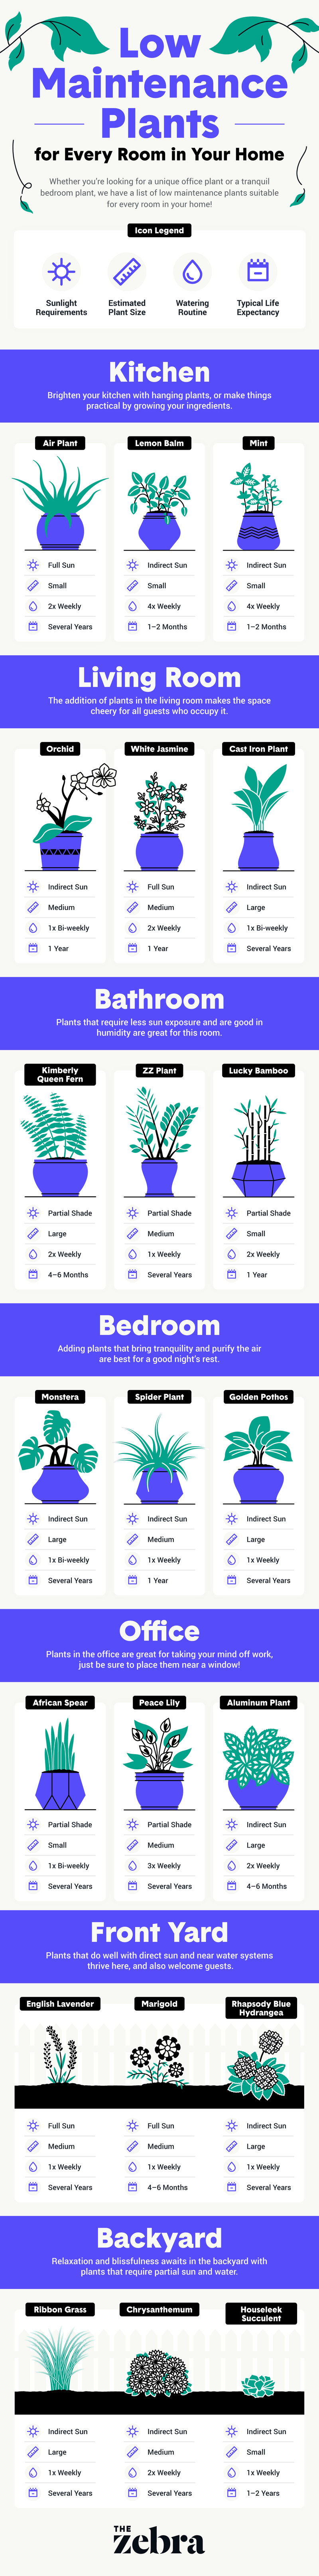 easy to take care of houseplants infographic